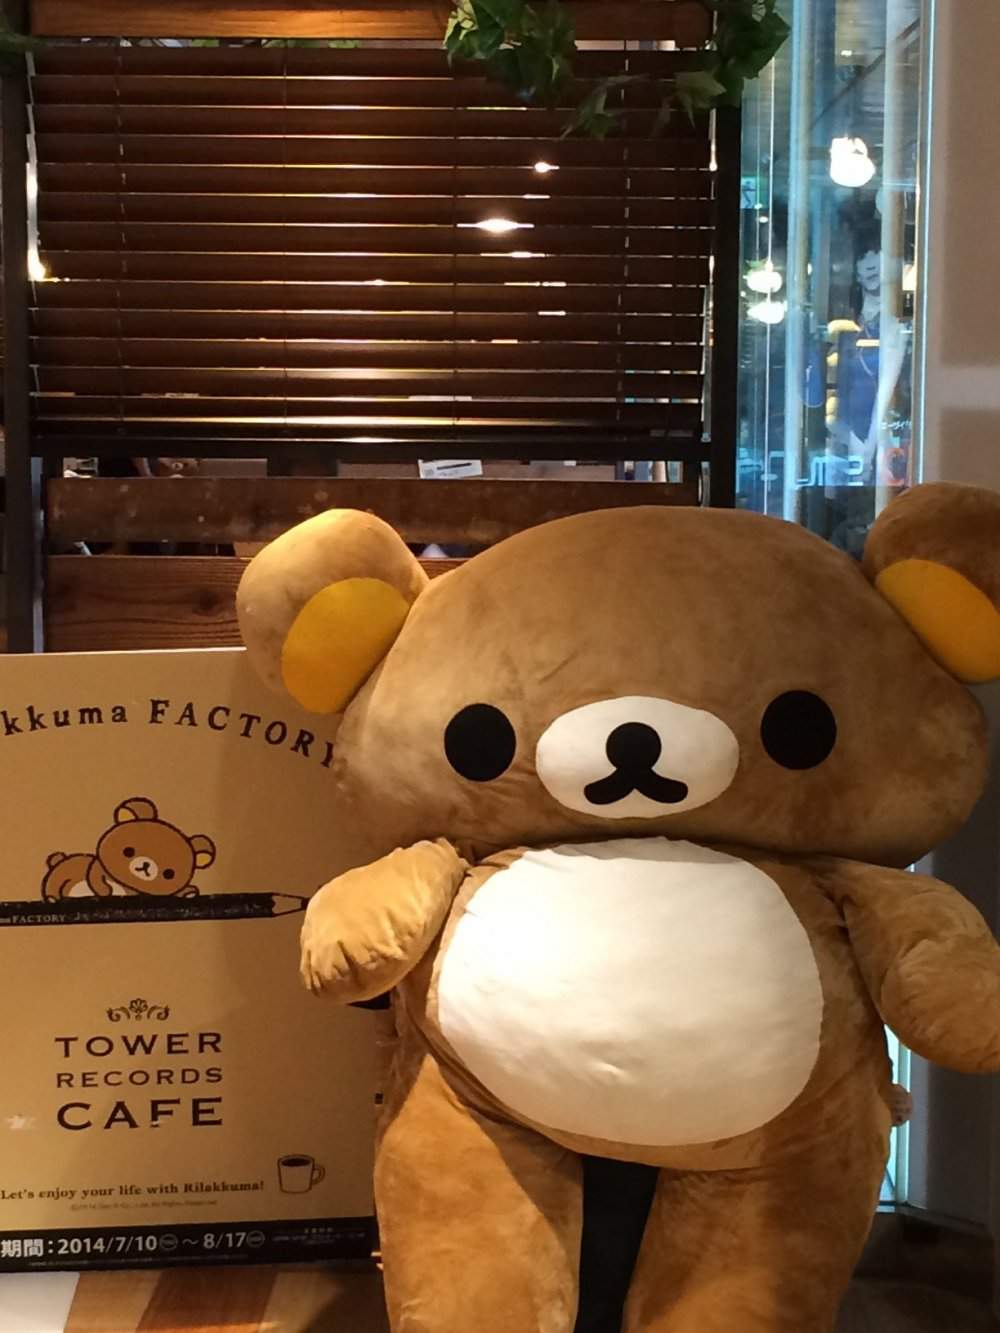 The huge Rilakkuma at the entrance